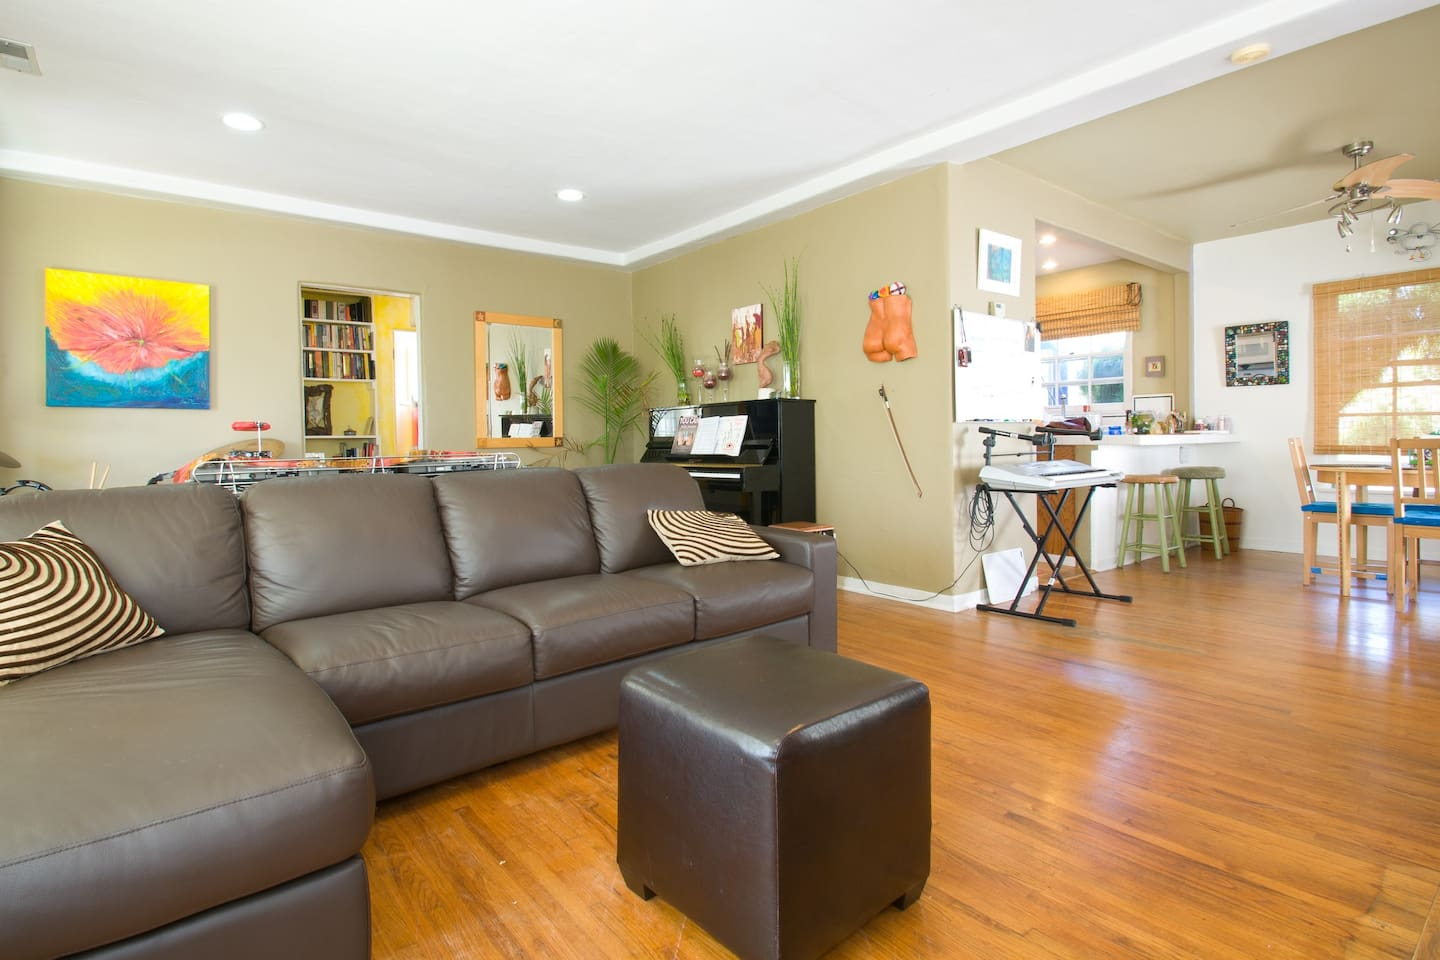 Comfortable leather sectional couch to entertain many folks.